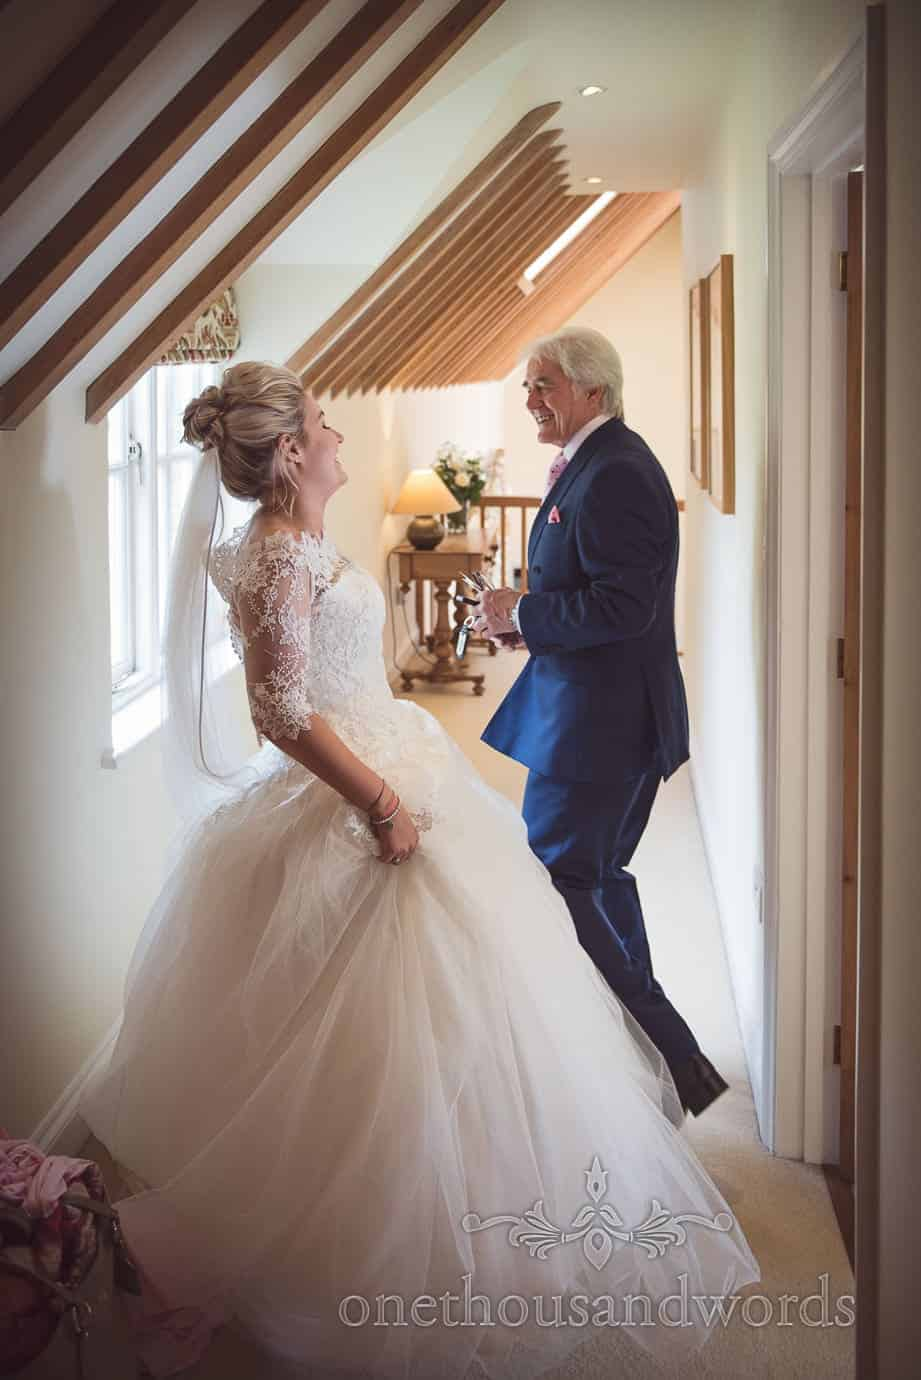 Bride and father laughing together on wedding morning with roofing rafters